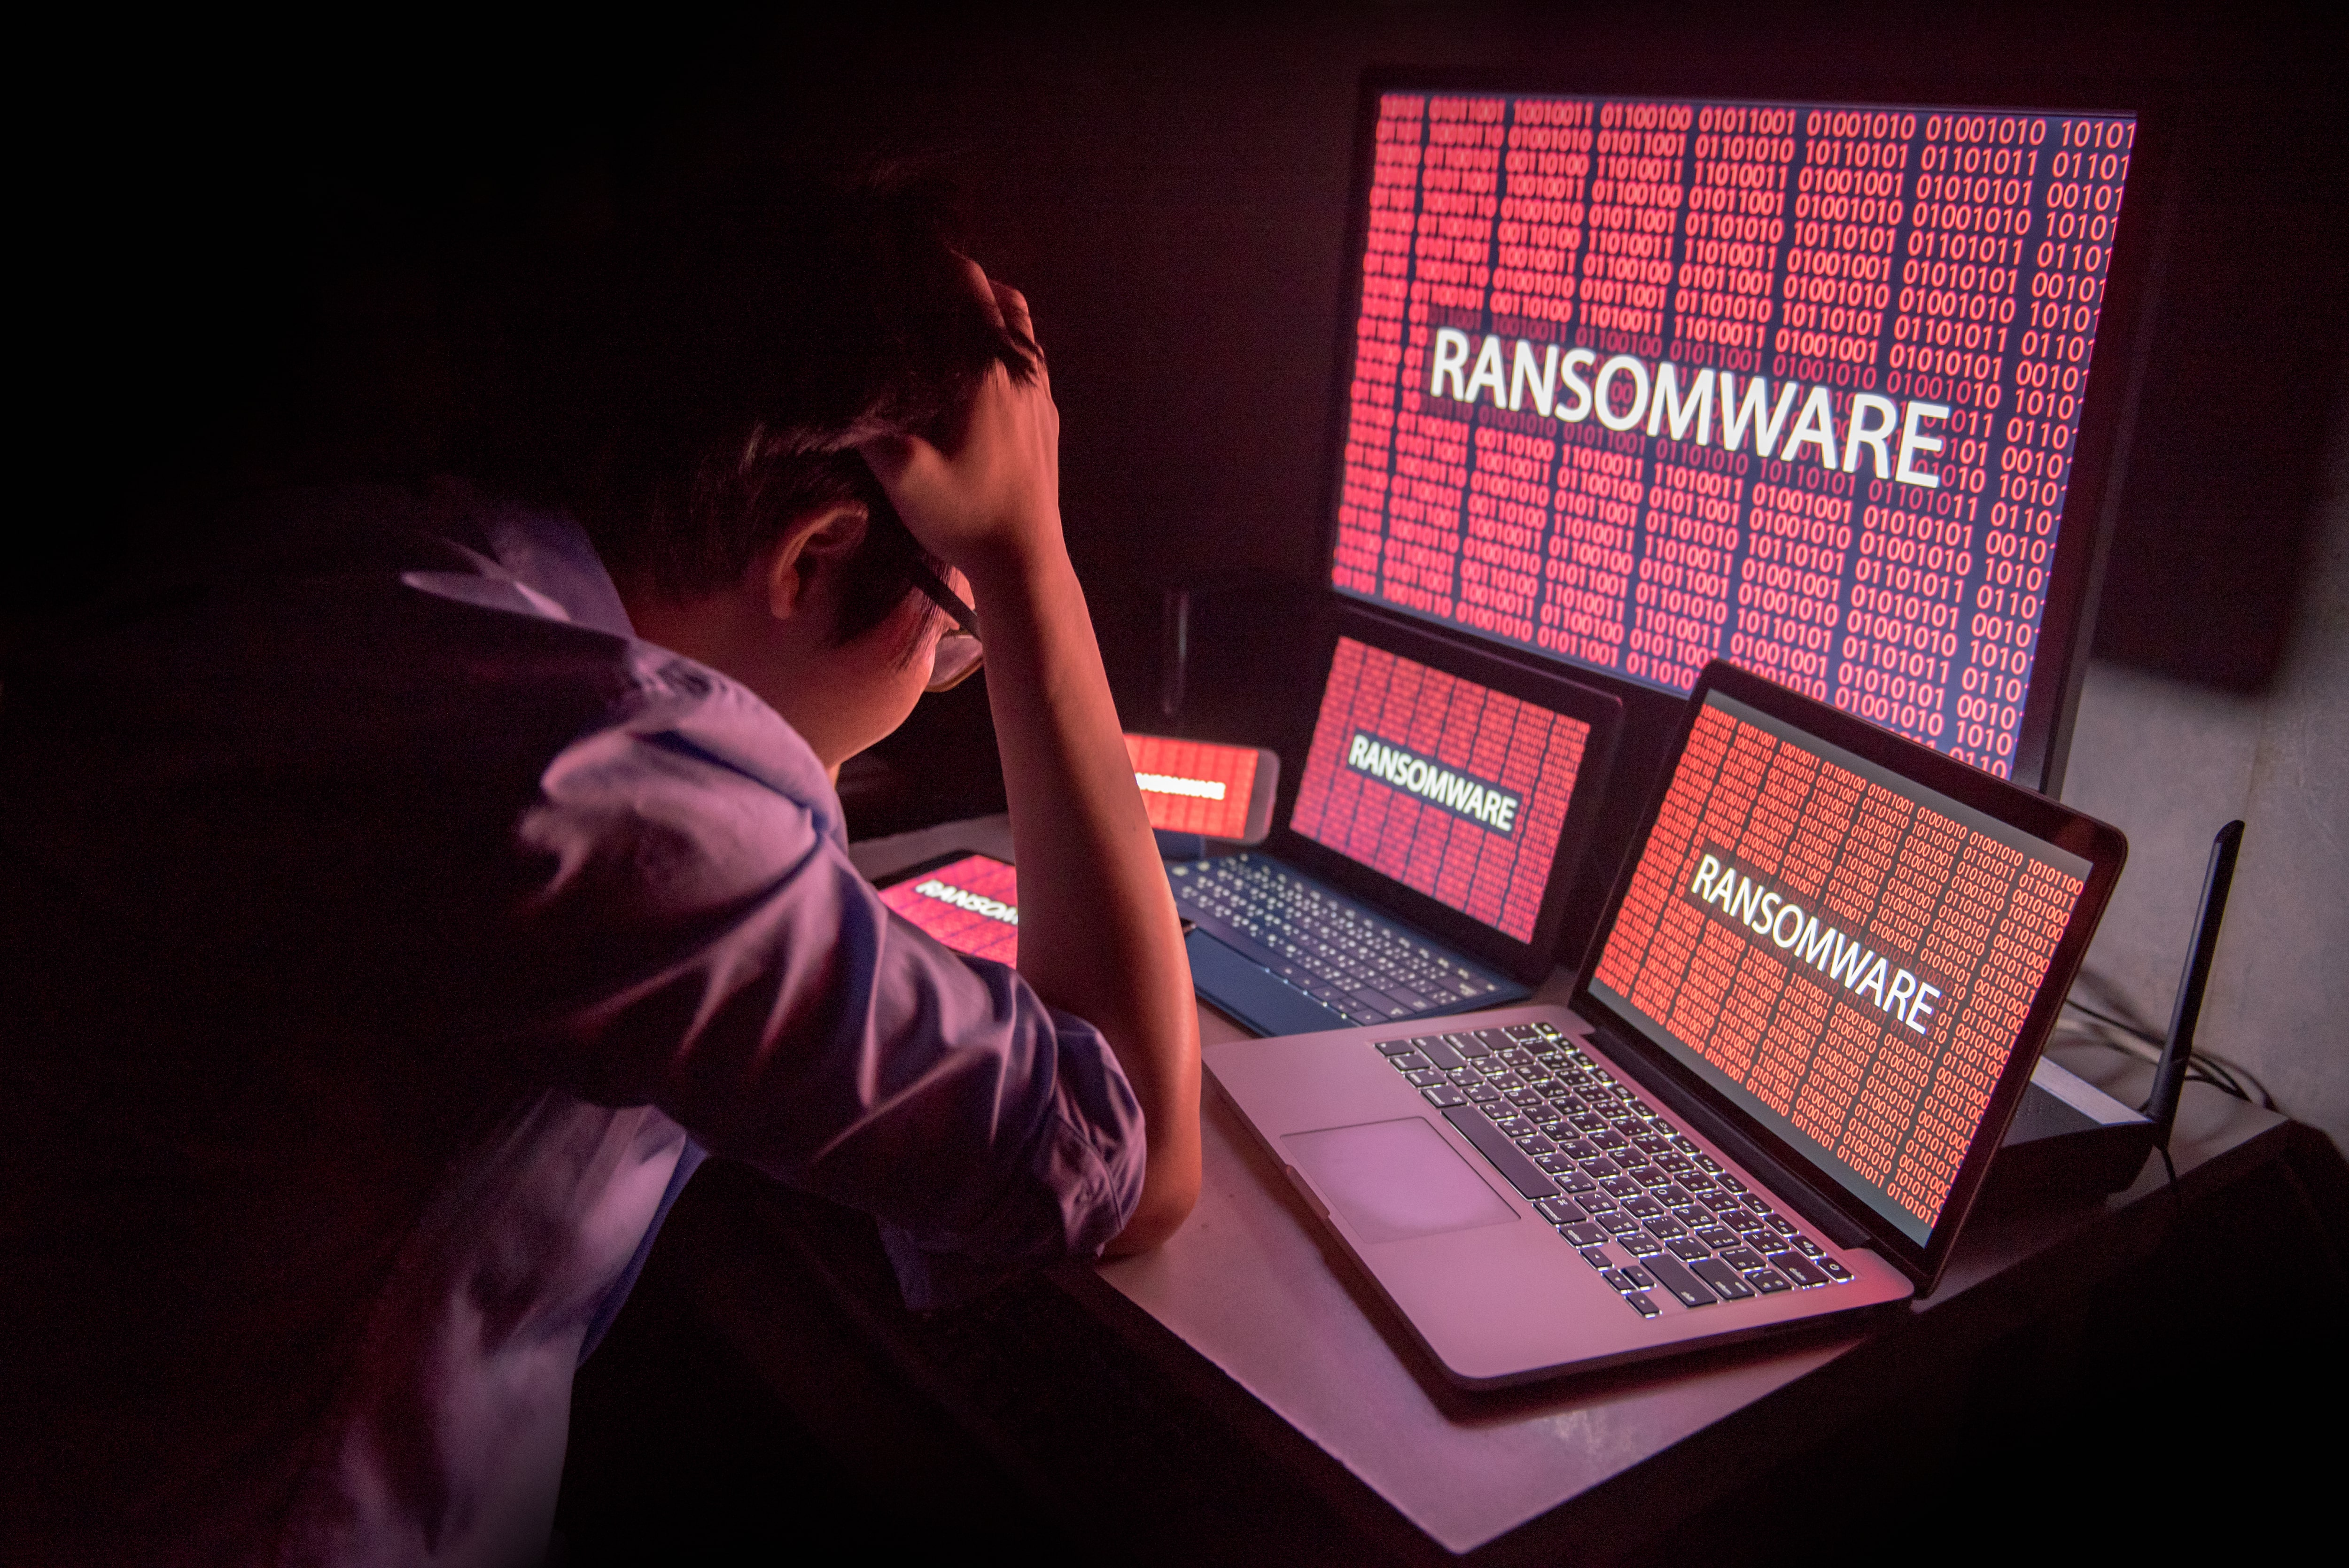 MAZE Ransomware Explained - Facts, threats, and security strategies.